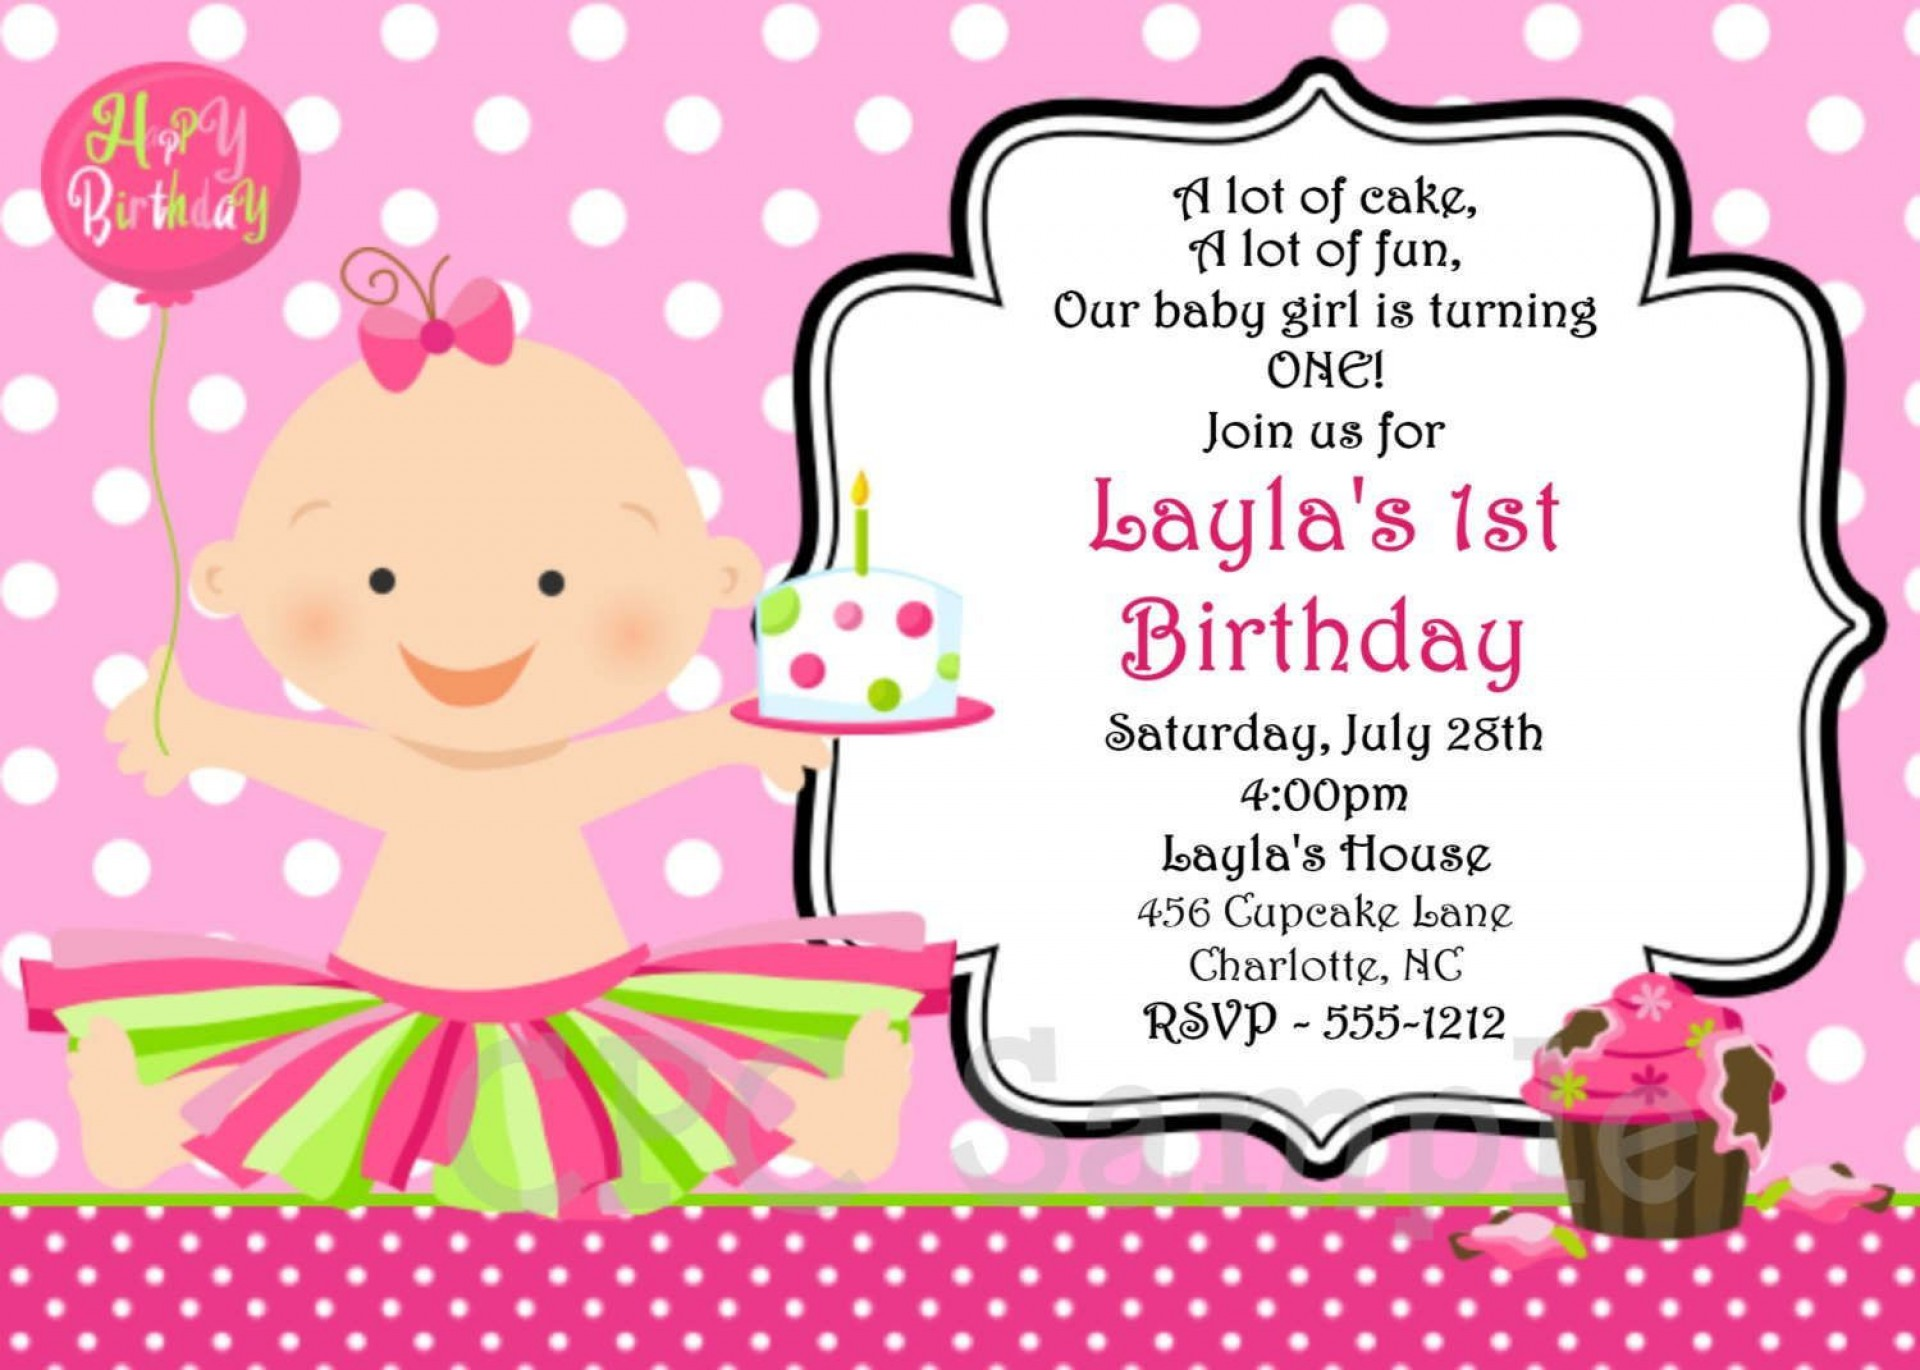 004 Archaicawful Free Online Birthday Invitation Card Maker With Name And Photo Design 1920